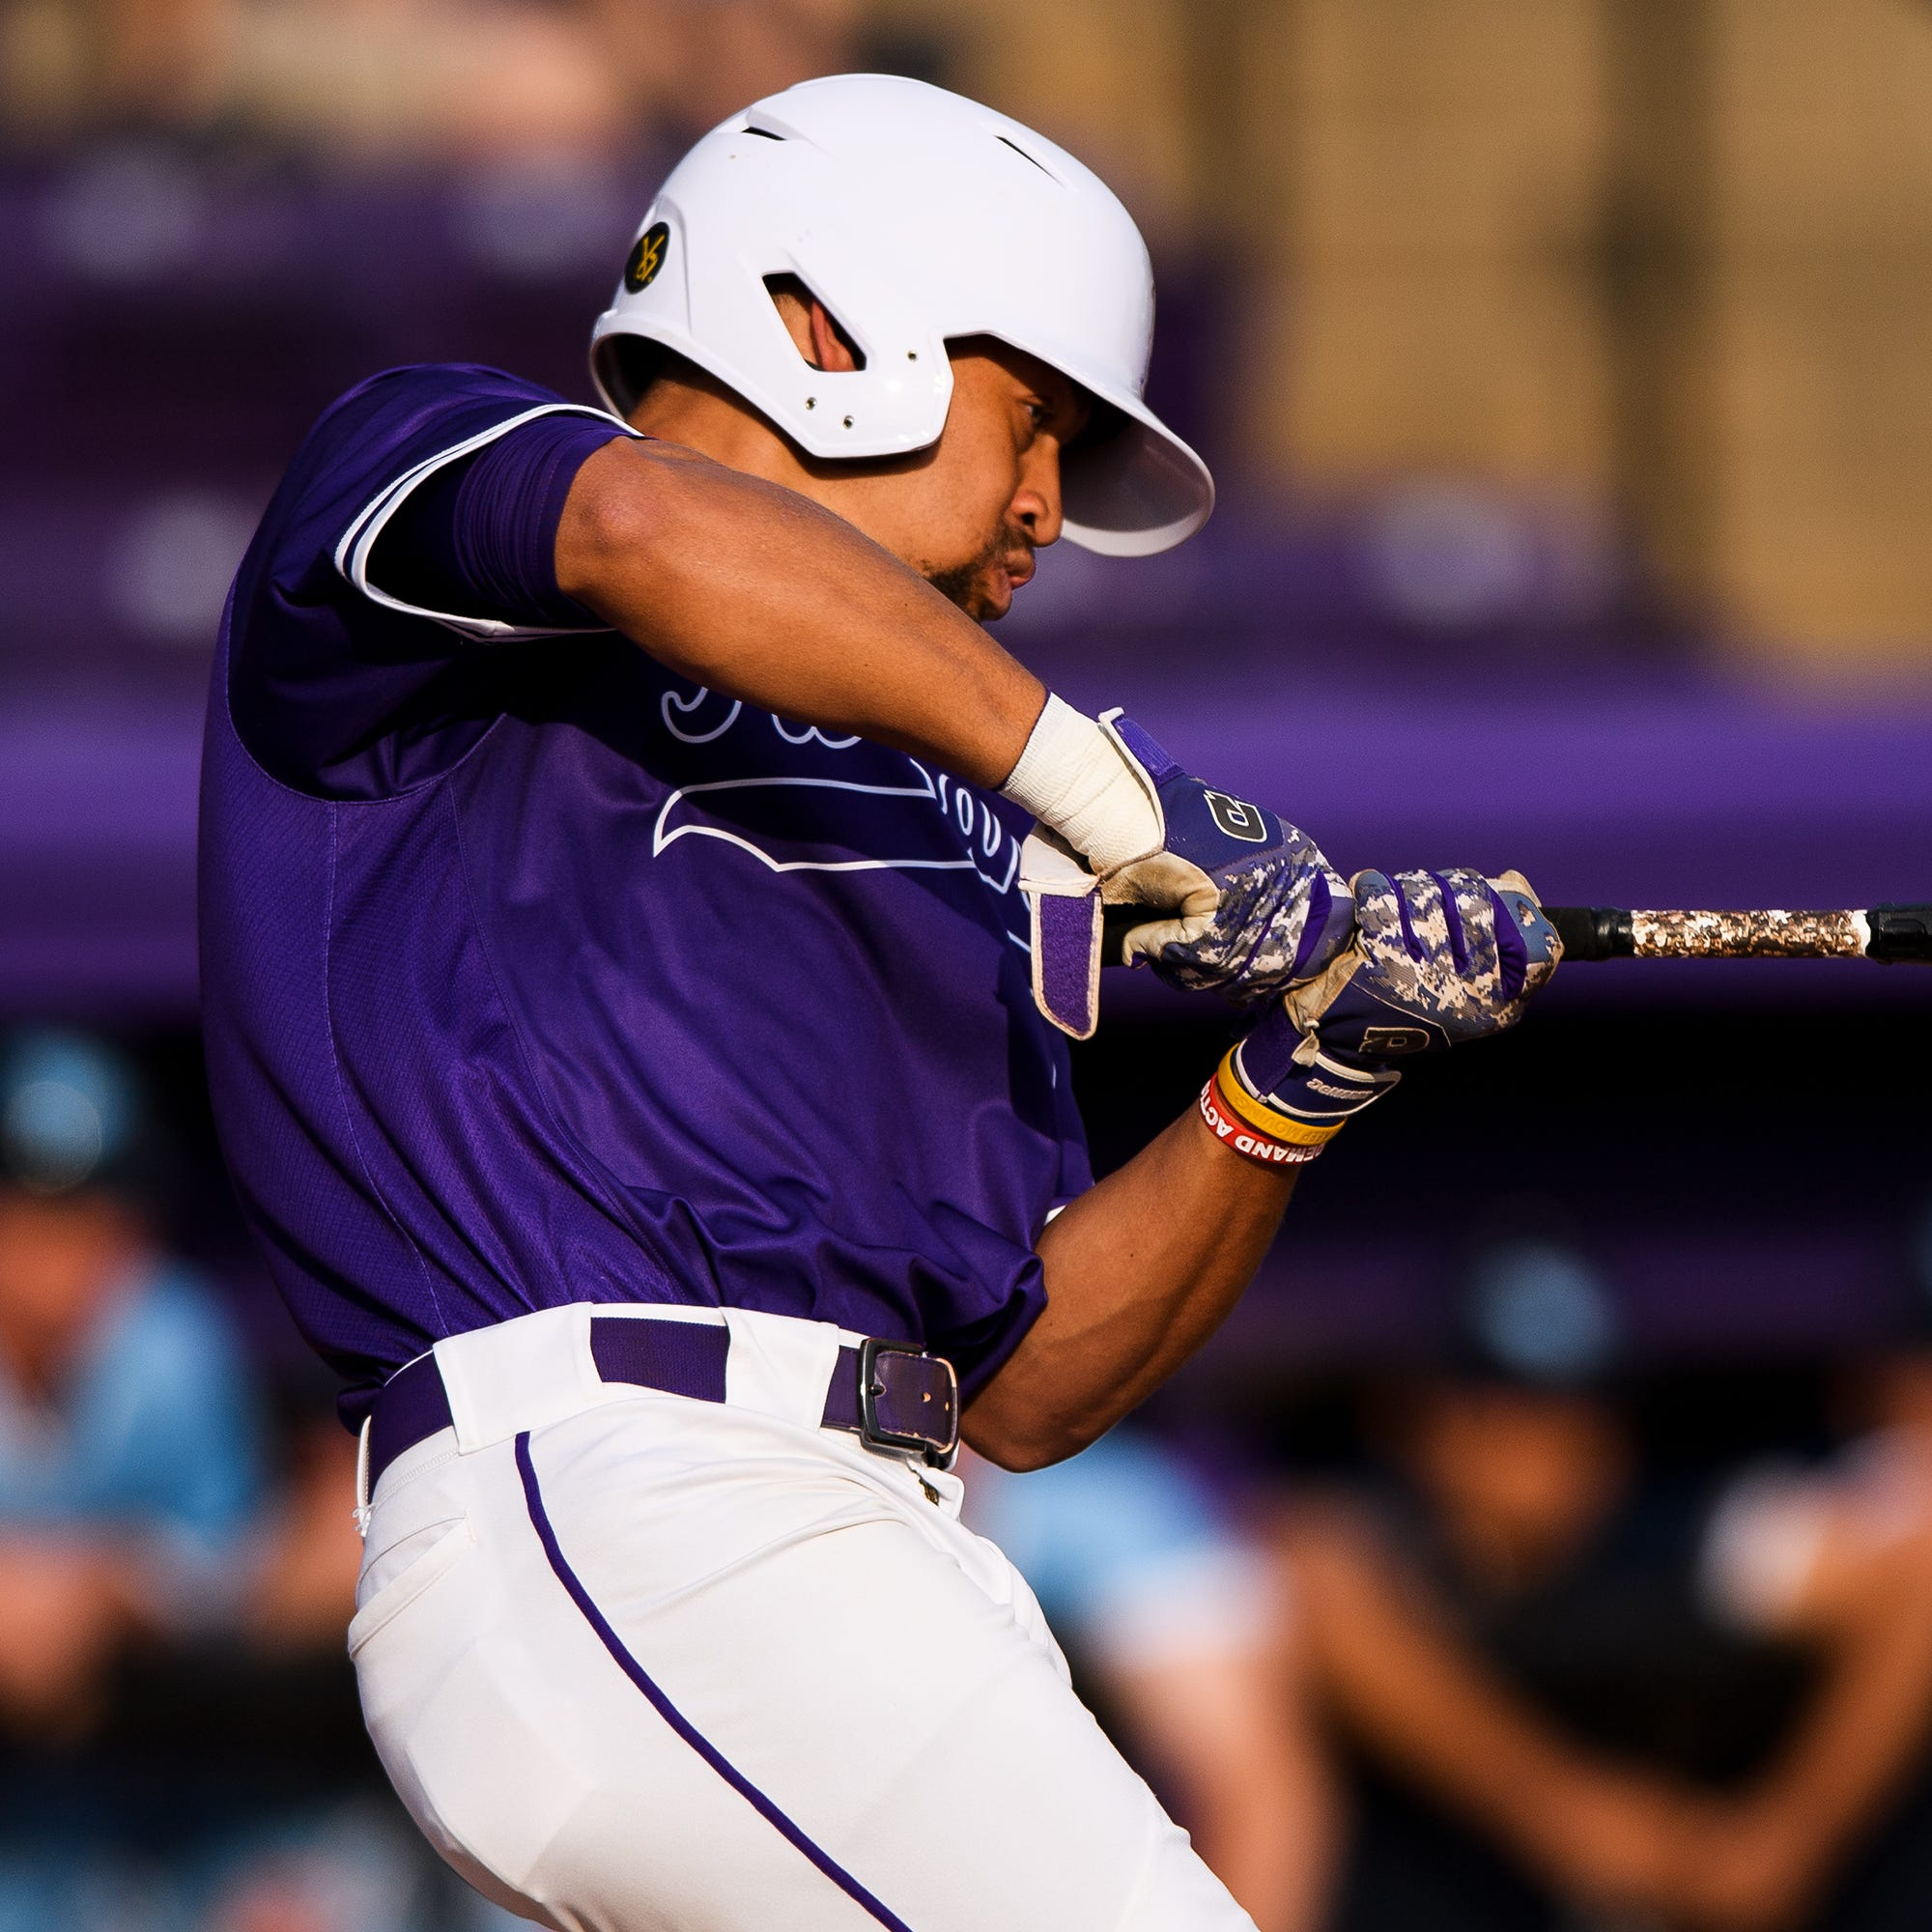 Furman's Jabari Richards bats for the cycle amid red-hot hitting streak